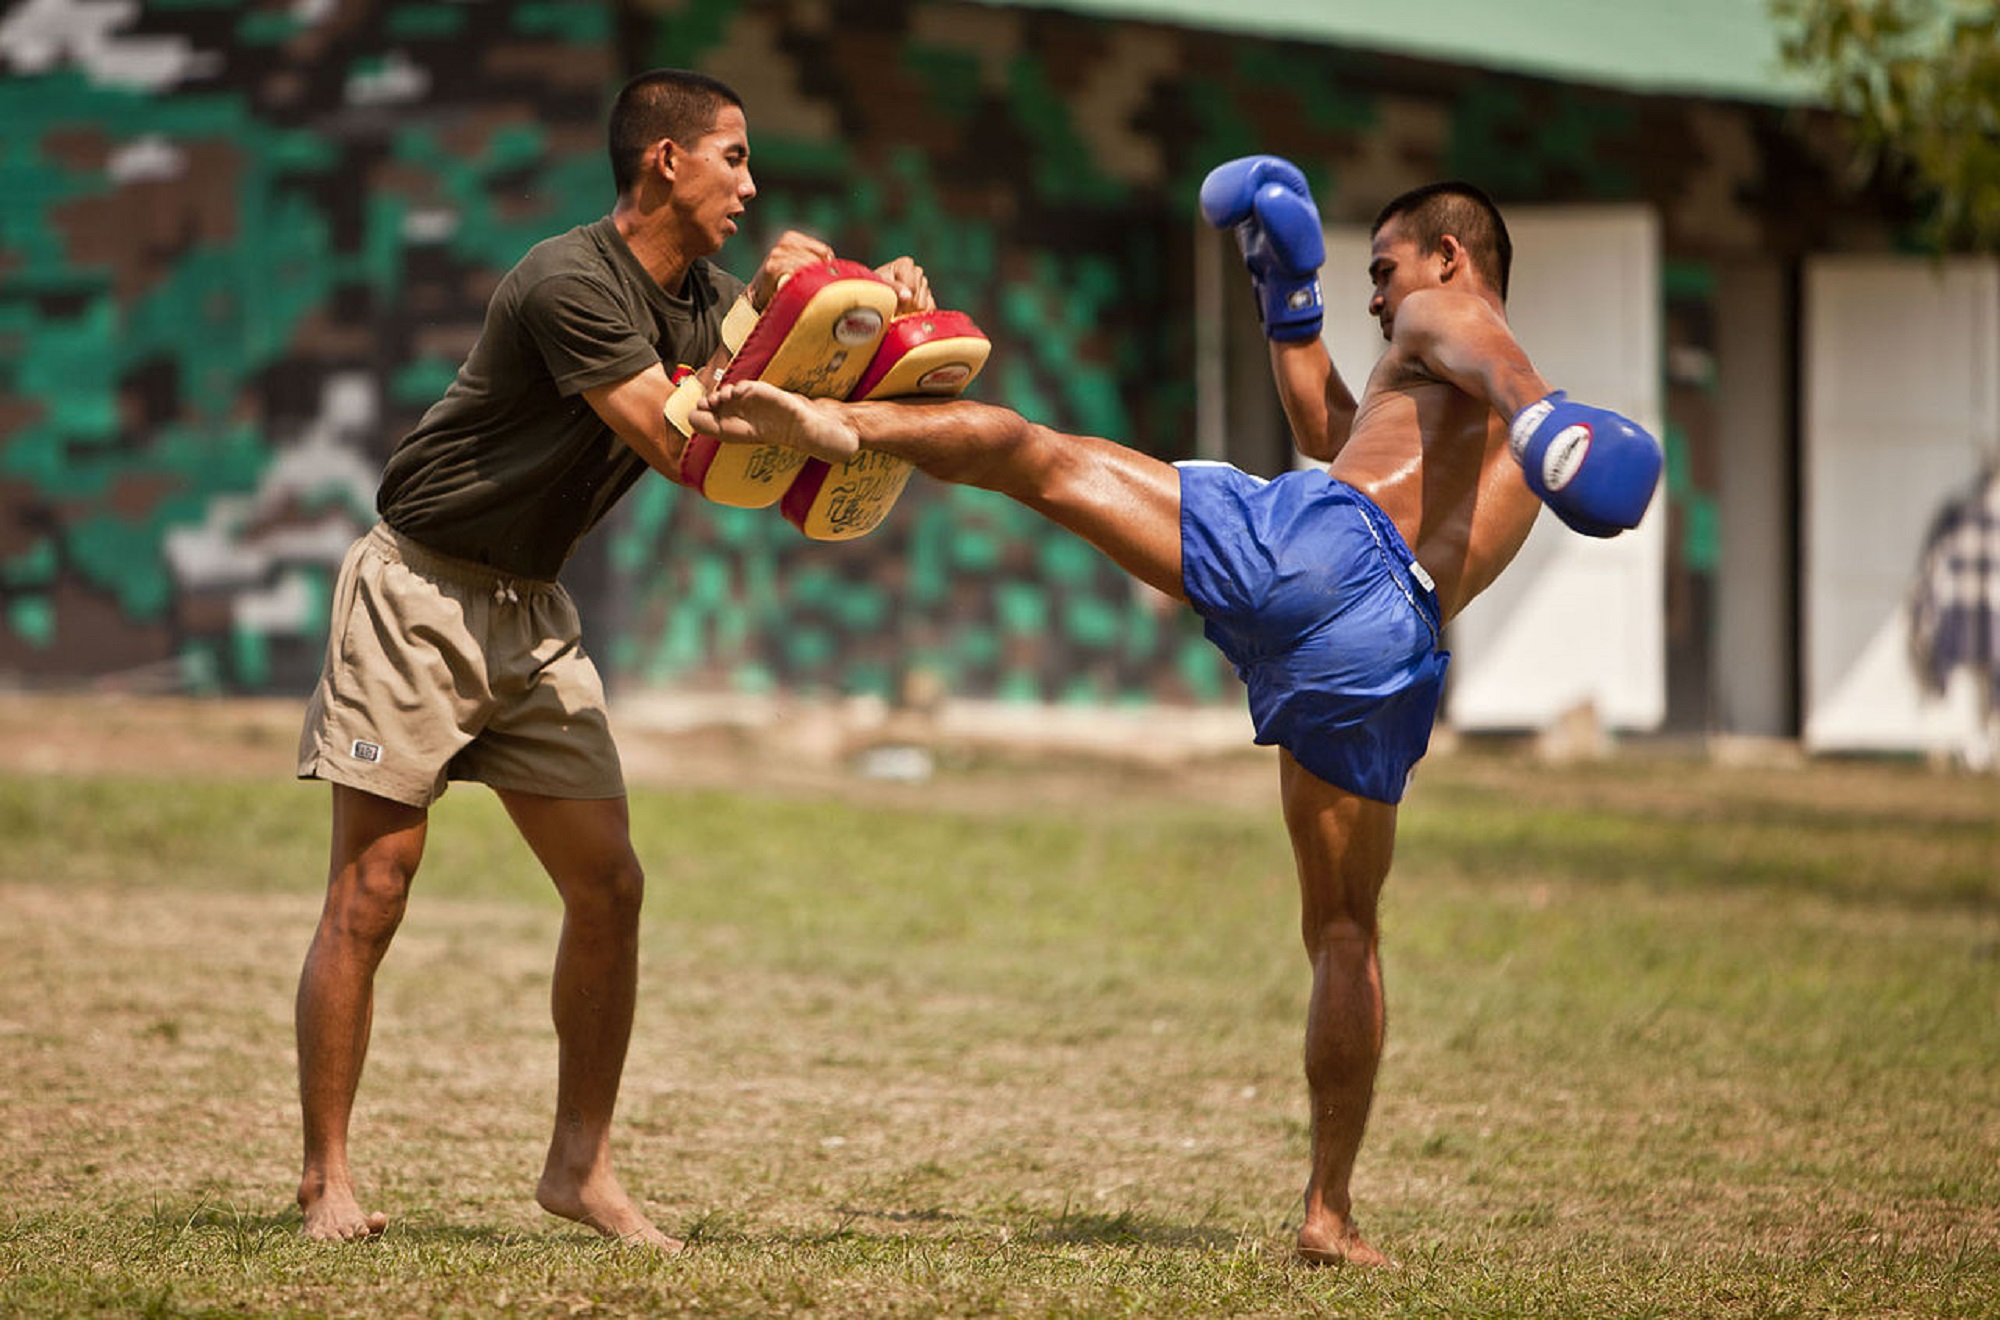 Muay Thai for A Great Holiday